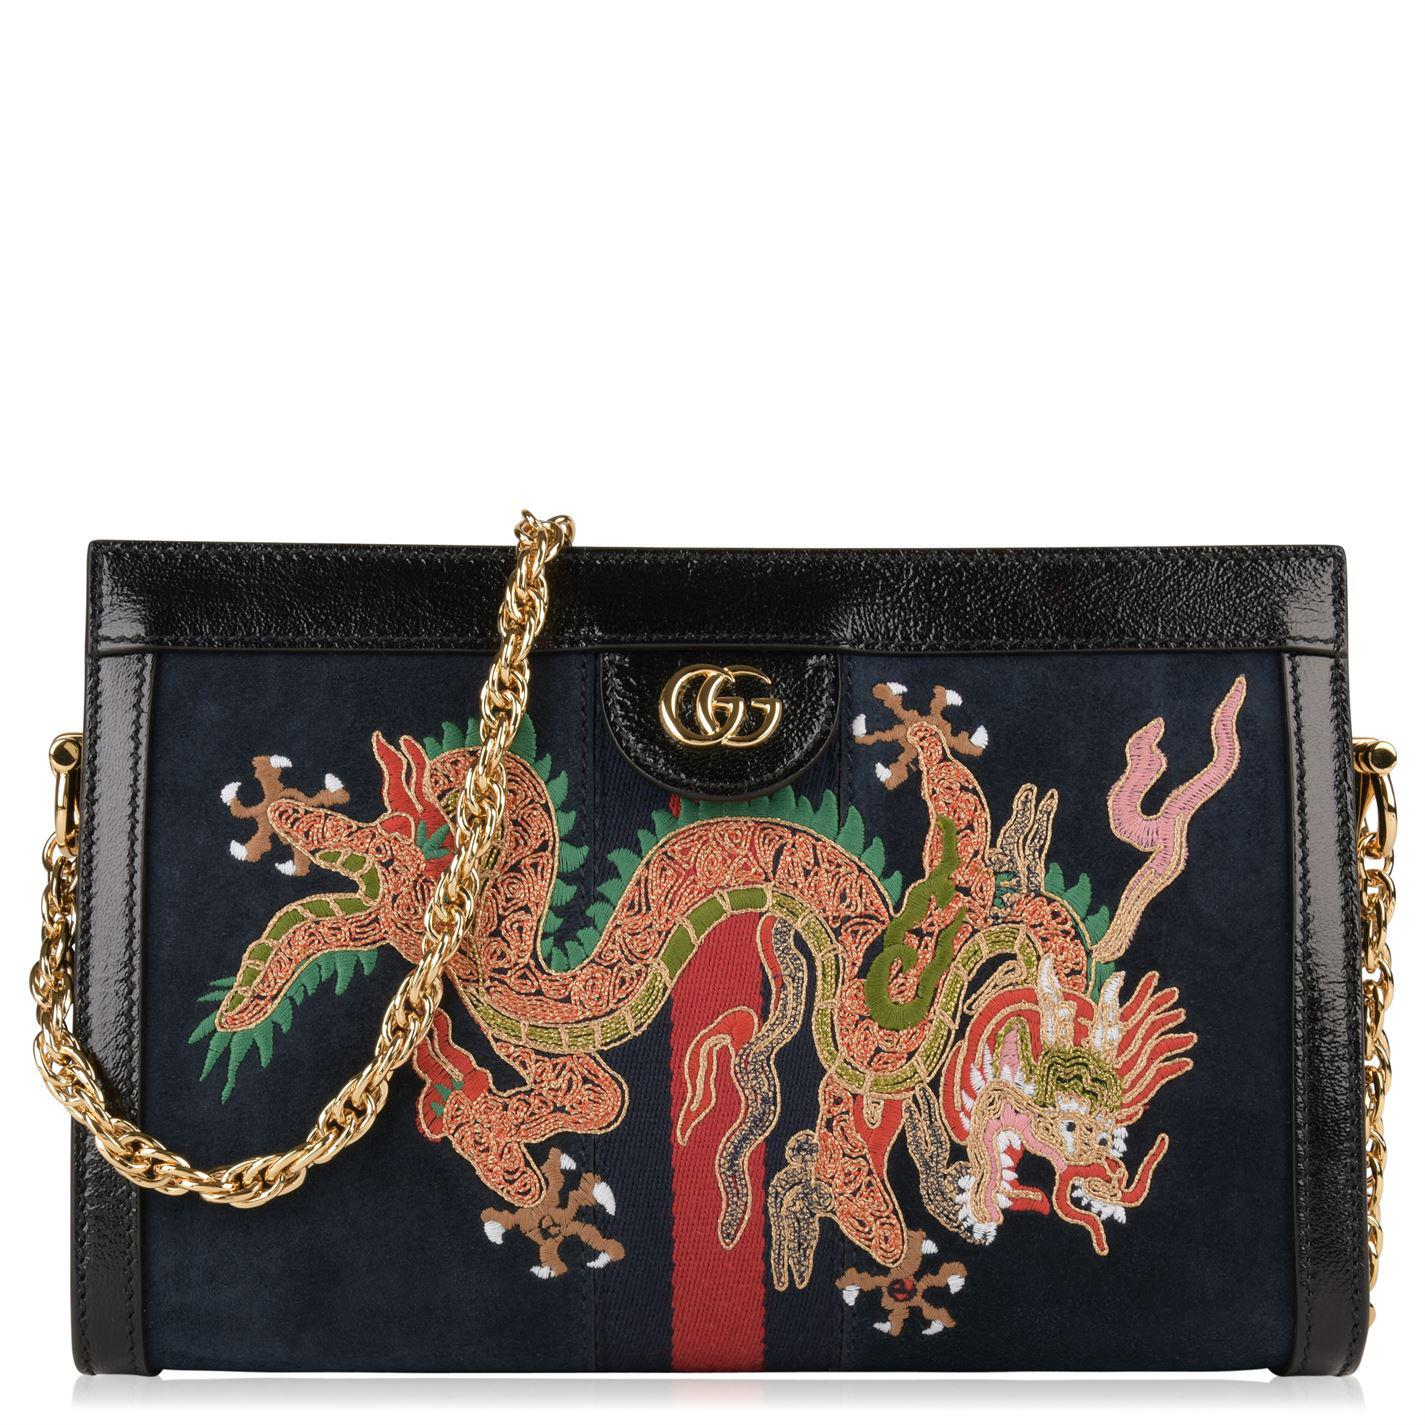 b6e3299b412 Gucci Ophidia Dragon Embroidered Suede Shoulder Bag in Blue - Lyst